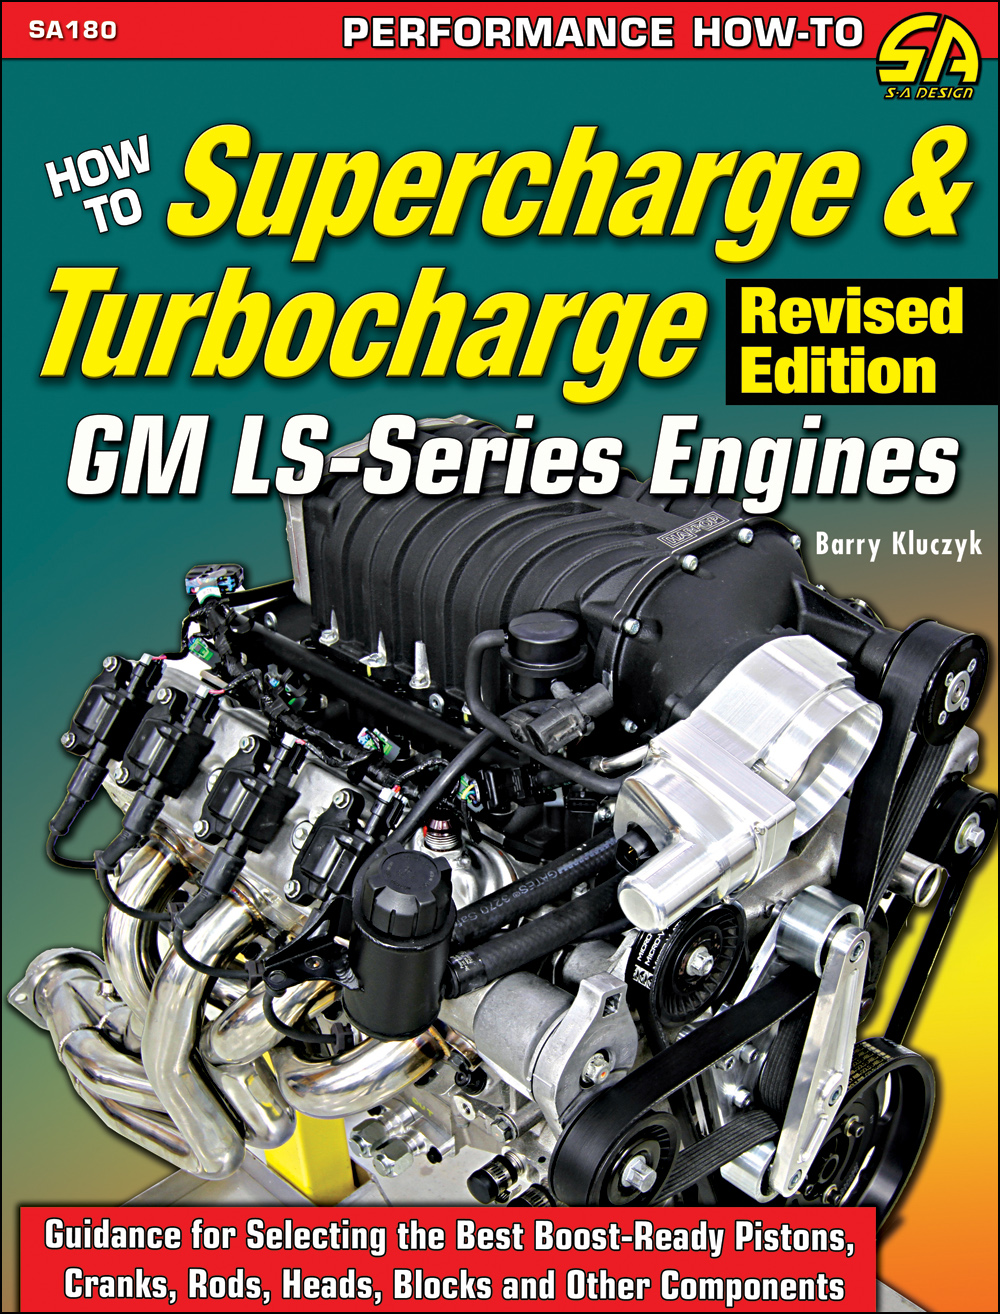 How to Supercharge & Turbocharge GM LS-Series and Vortec Engines